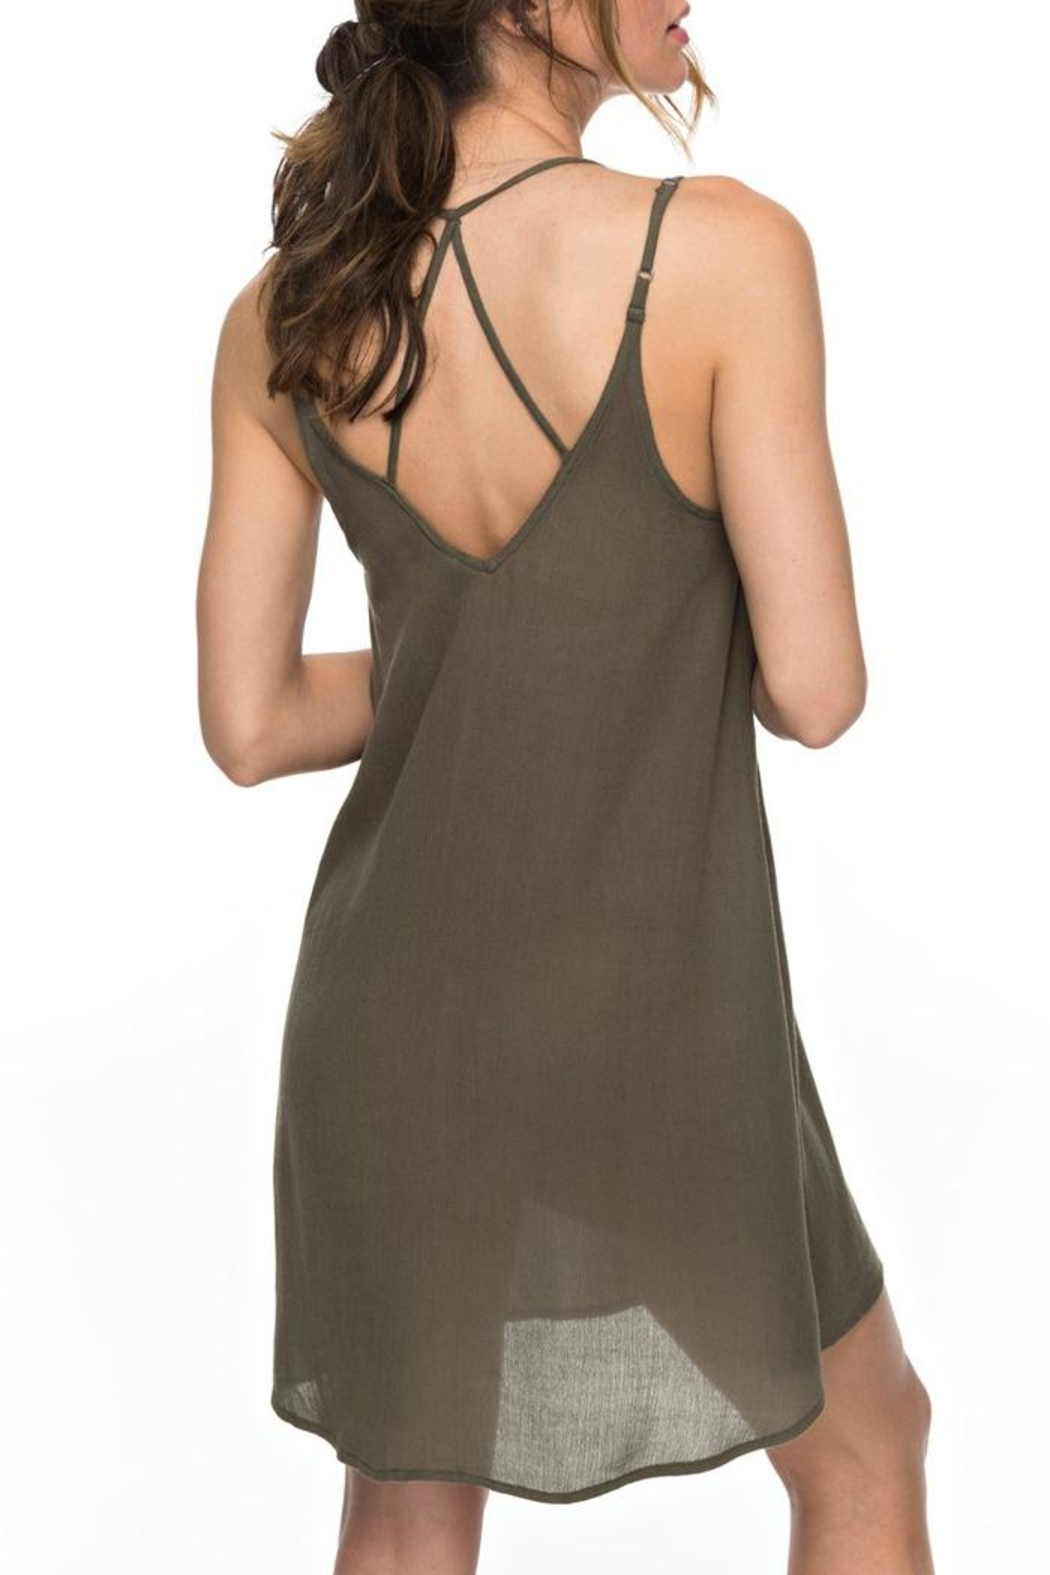 Roxy Green Strappy Dress - Front Full Image